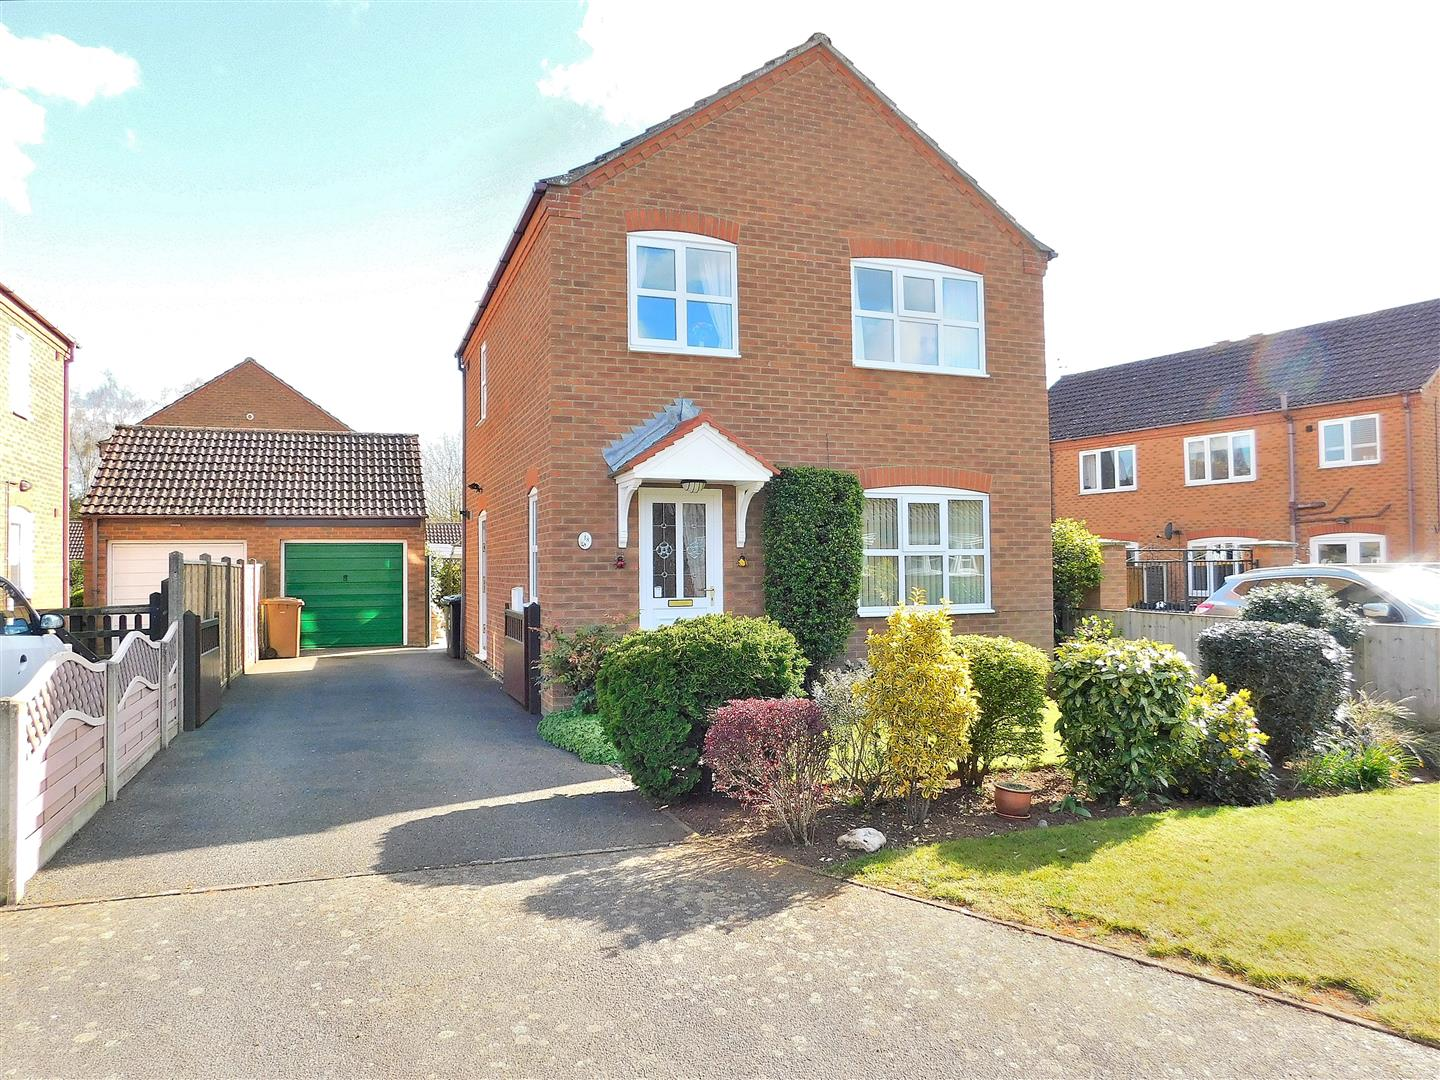 3 bed detached house for sale in Reg Houchen Road, King's Lynn, PE31